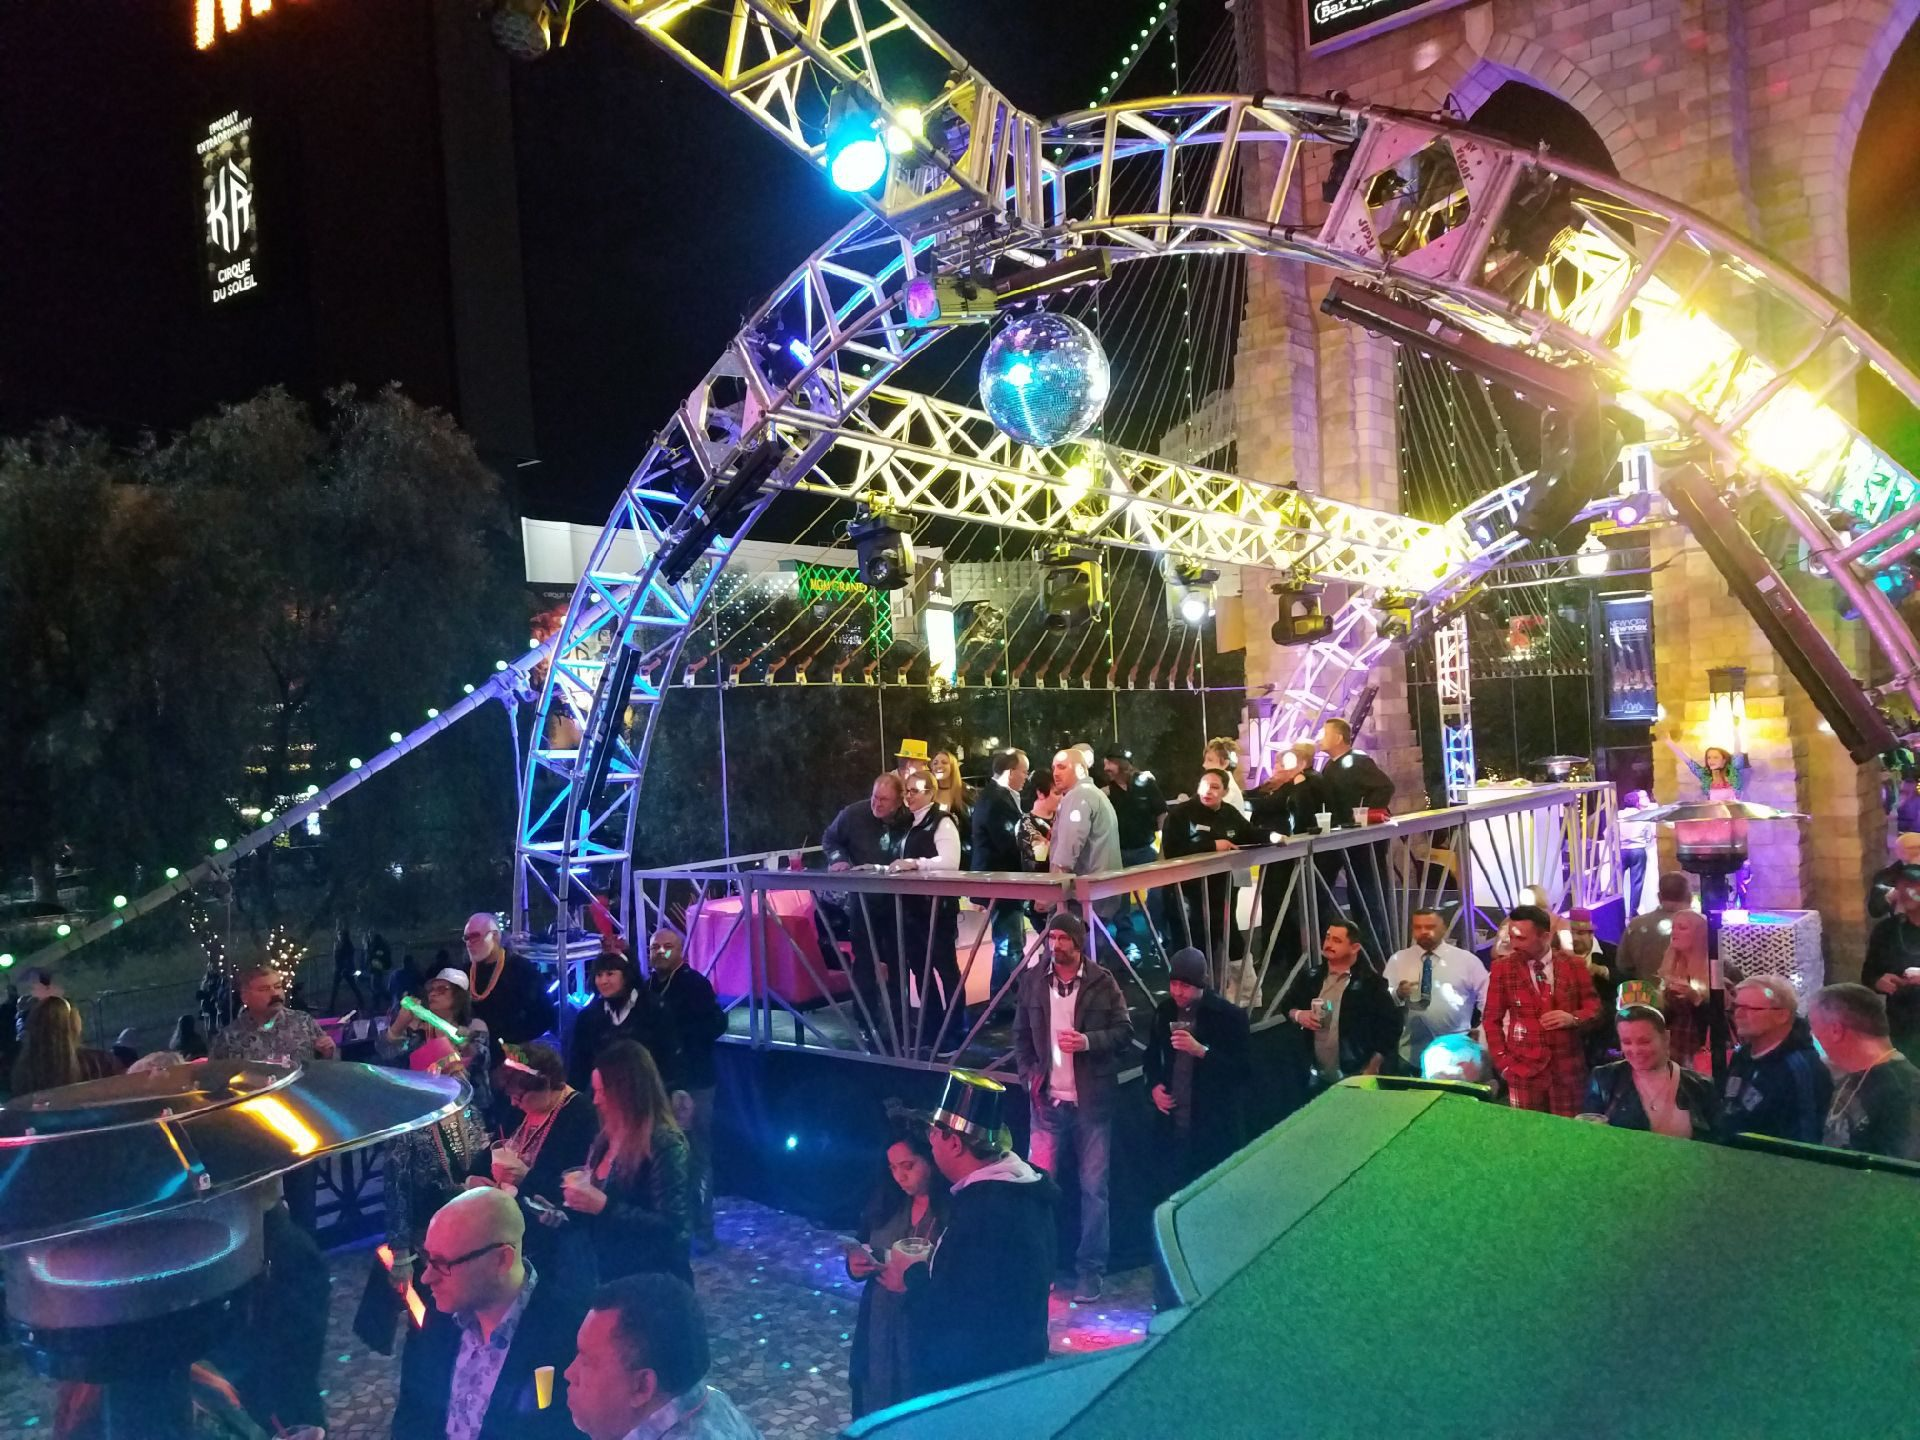 Wide view of New York, New York's New years eve party, including lighted truss system and party guests